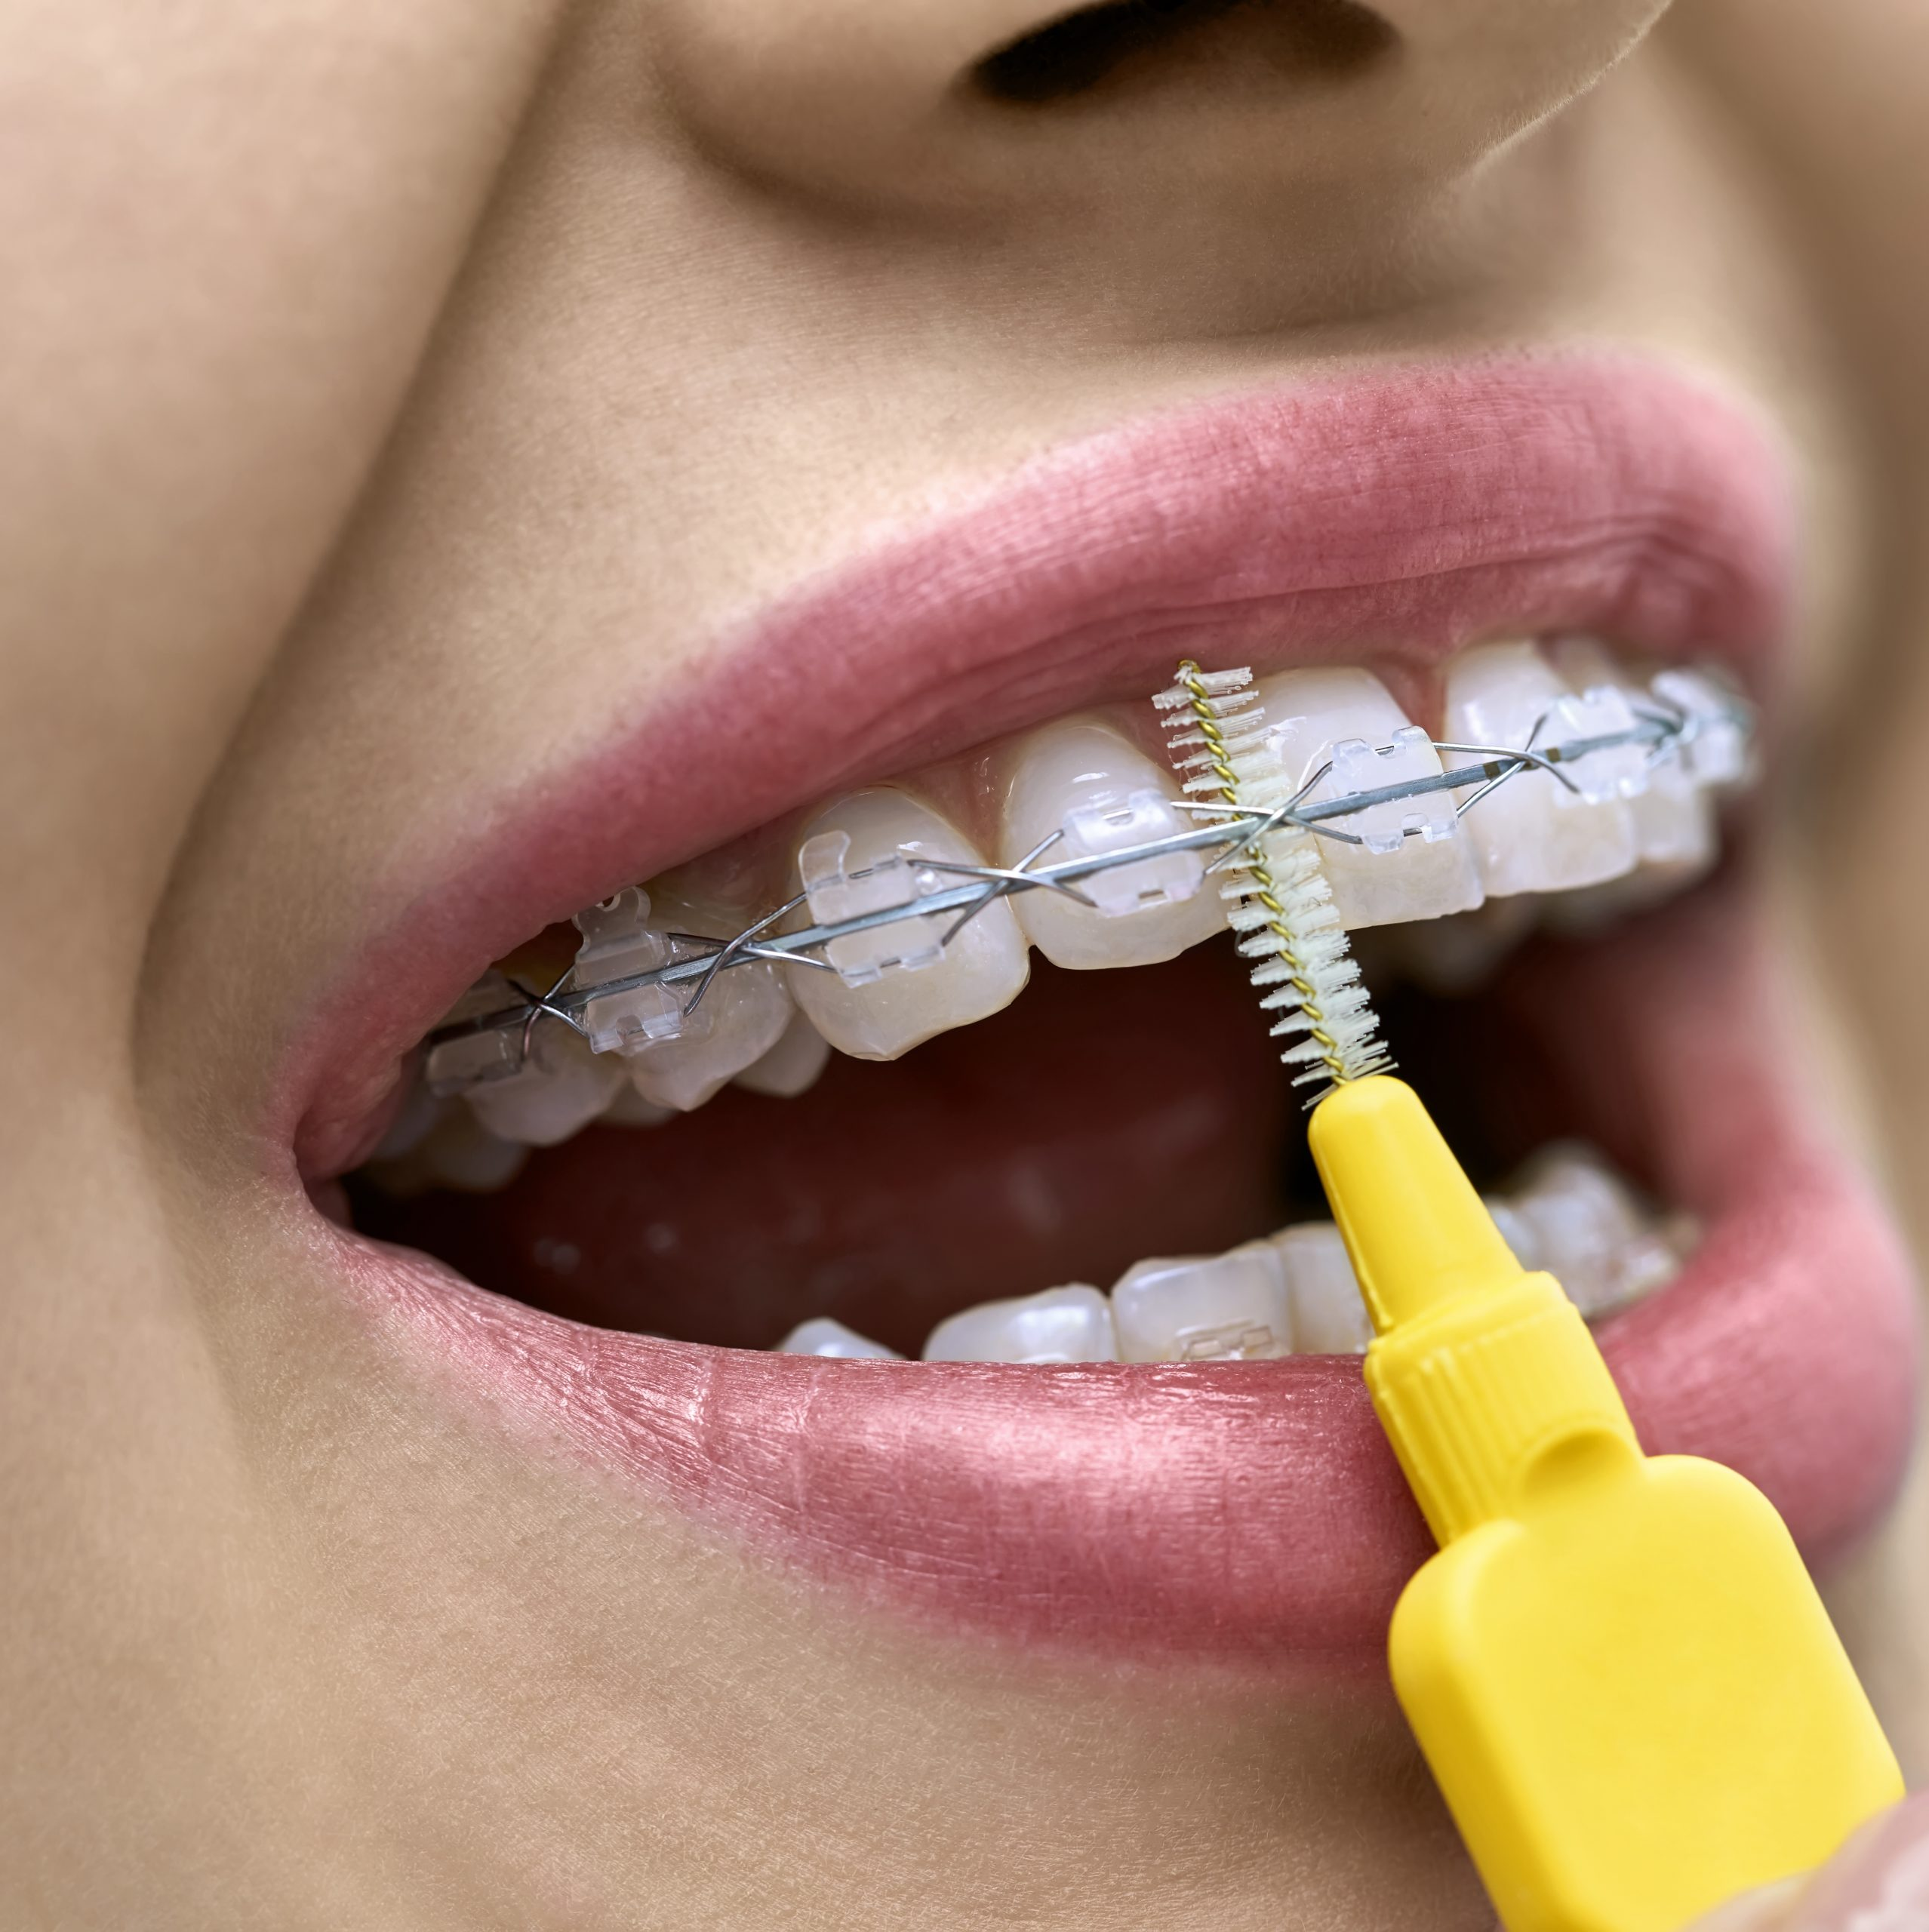 Woman is showing her teeth with braces in a dental clinic. Dentist is cleaning her bracket system with a help of a special brush. Macro horizontal photo.